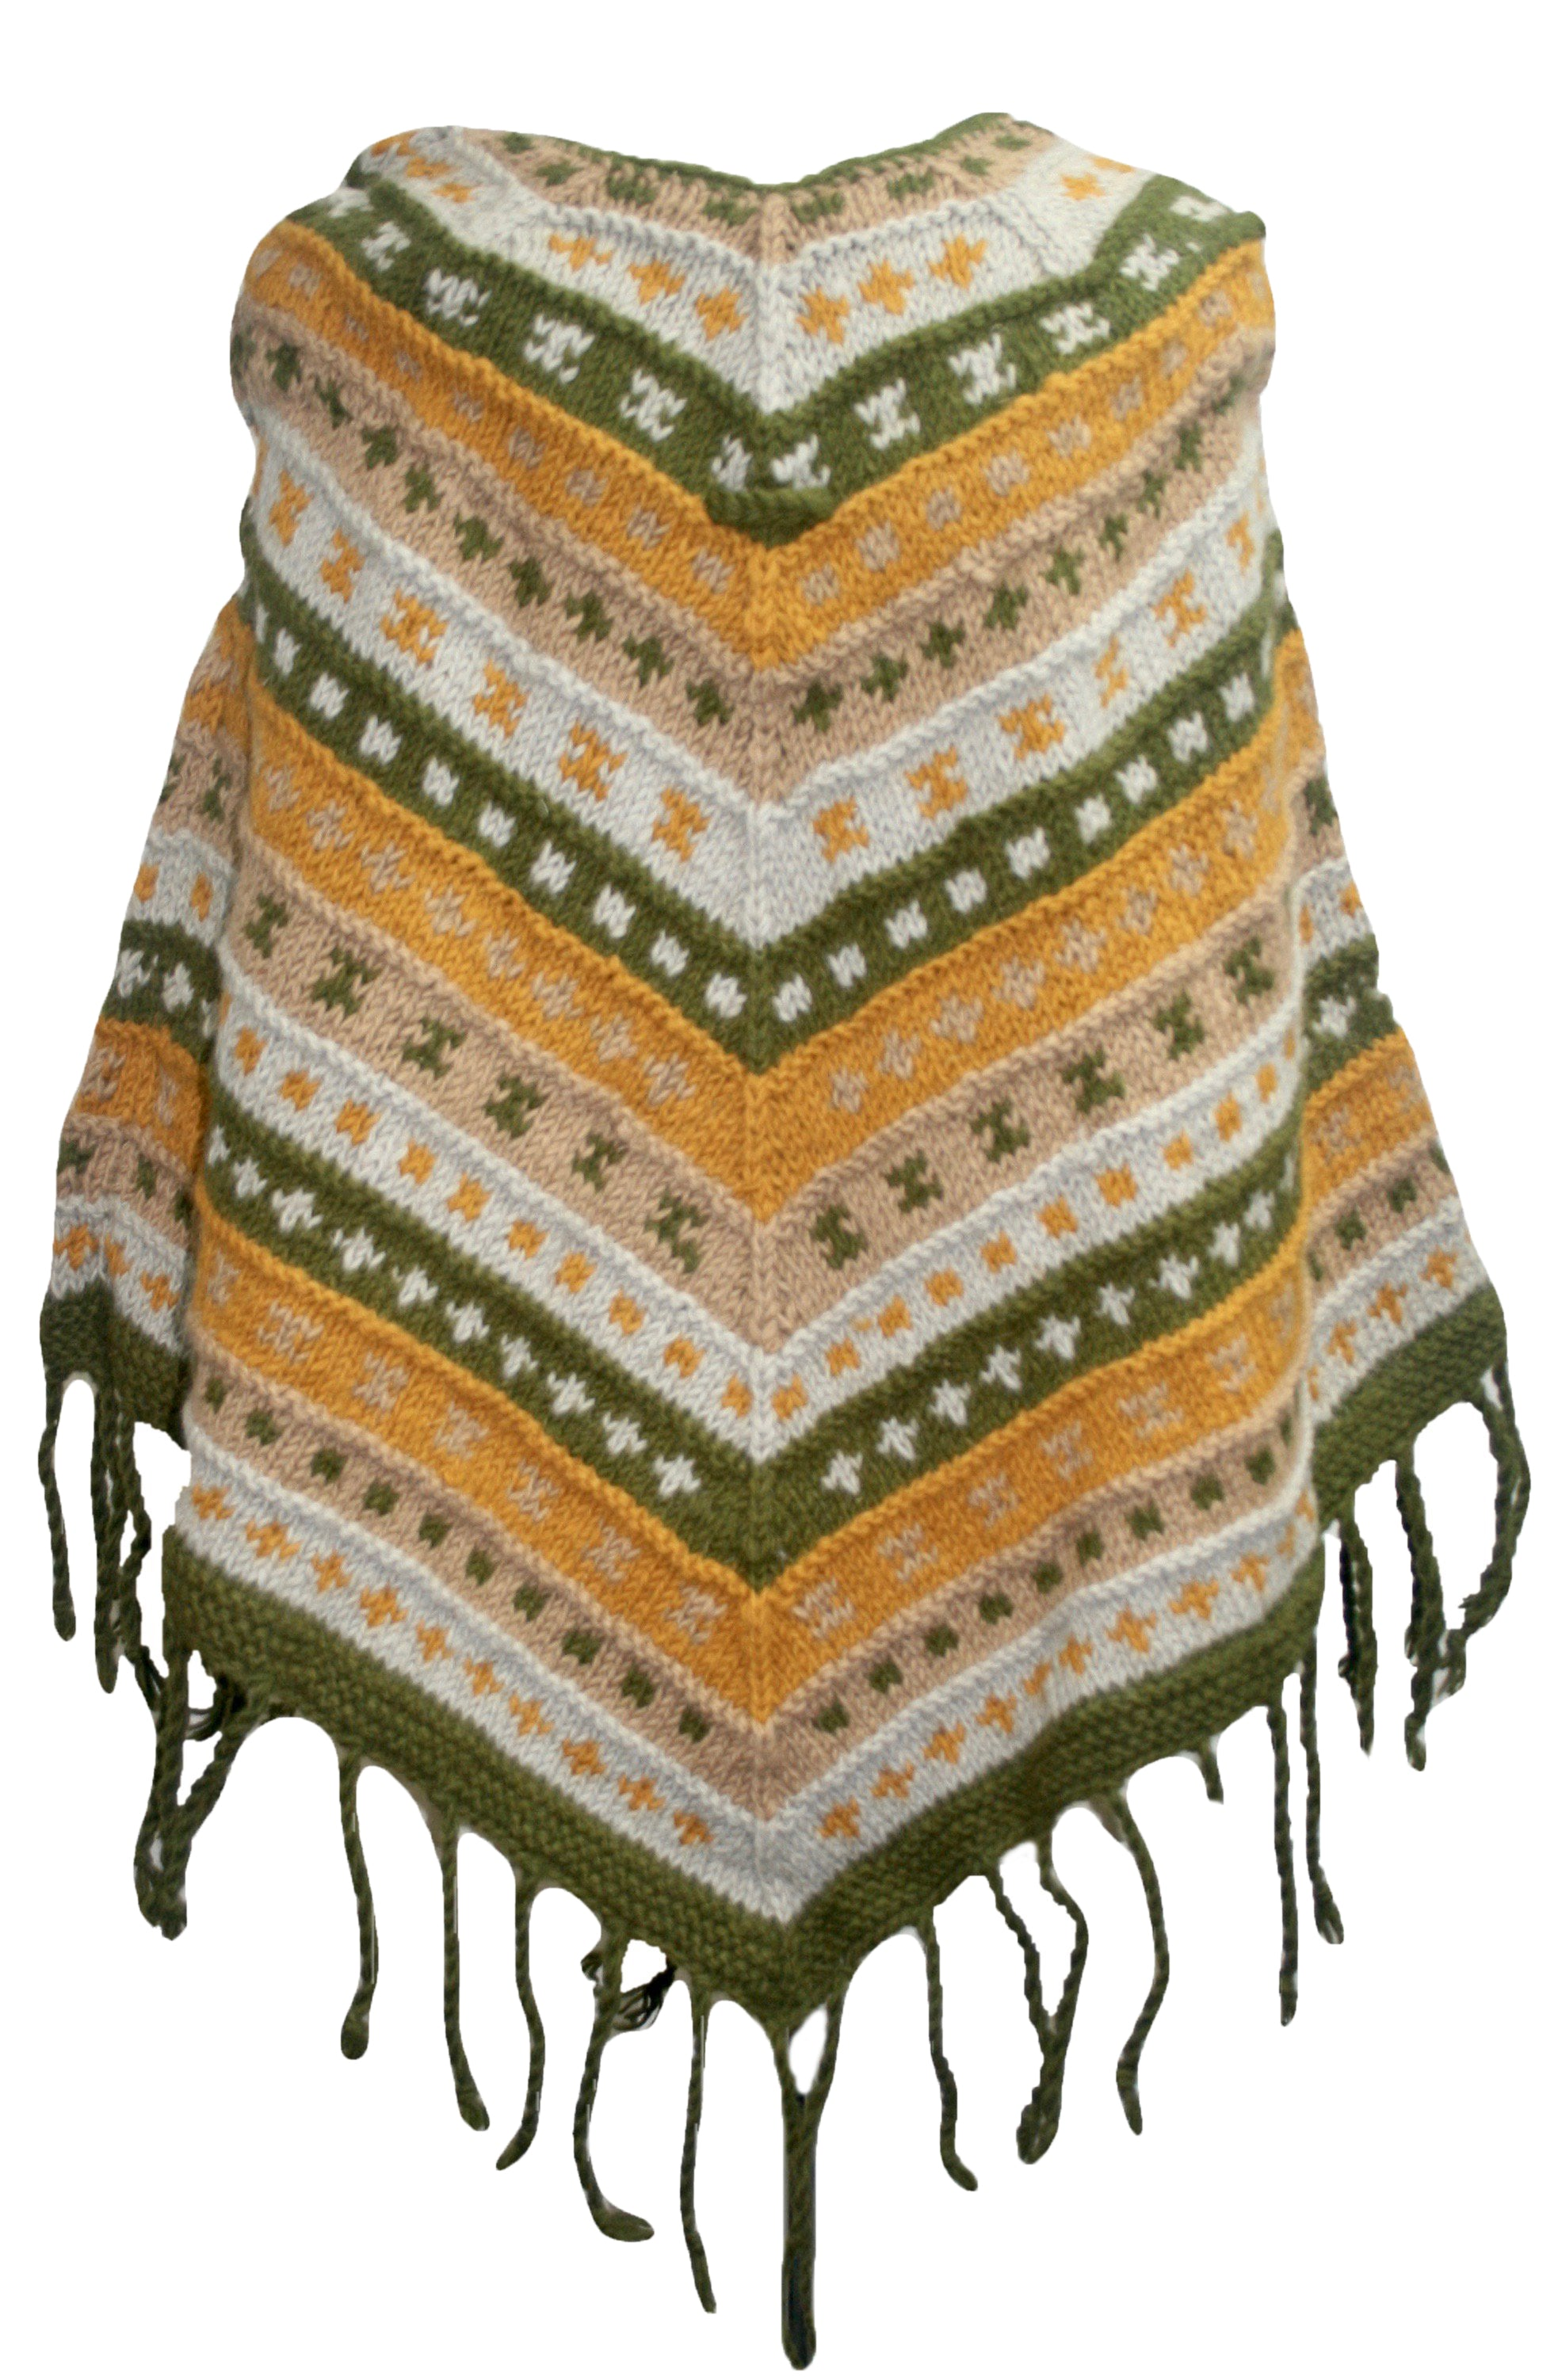 PN 200 Himalayan Thick Sheep Wool Hand Knitted Poncho - Agan Traders, PN 200 13